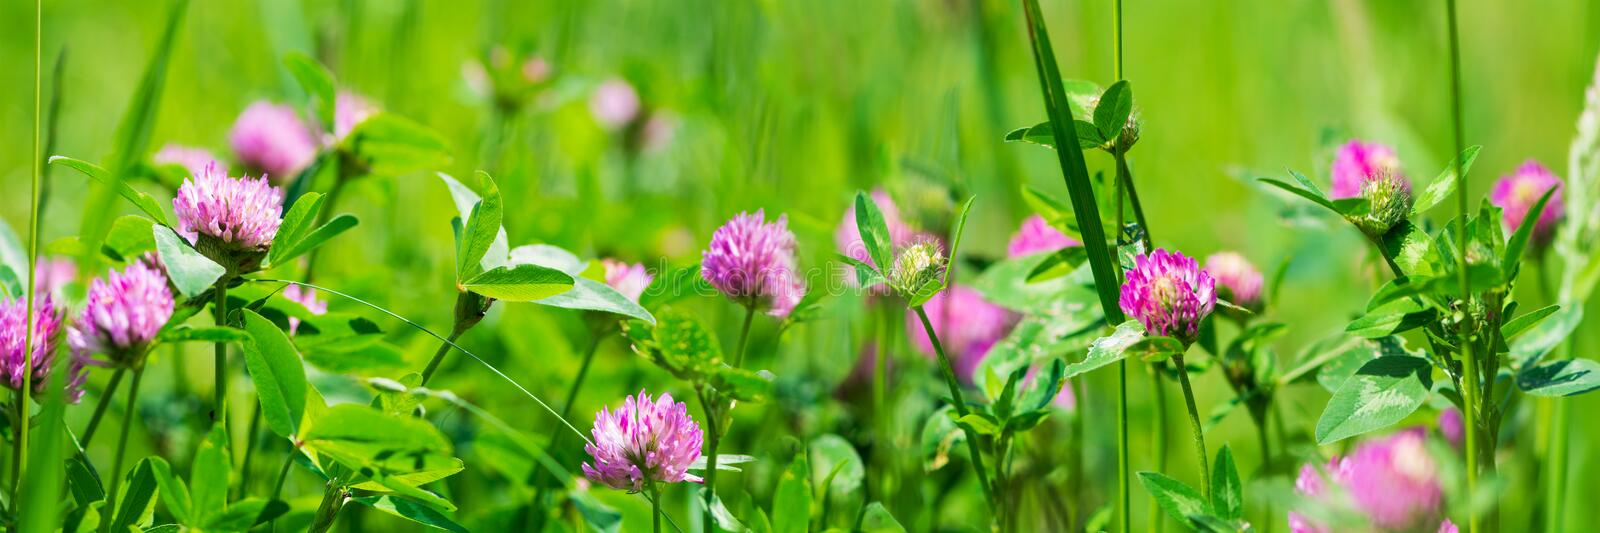 Banner 3:1. Purple clover trifolium flowers on meadow. Spring nature background. Soft focus.  stock image